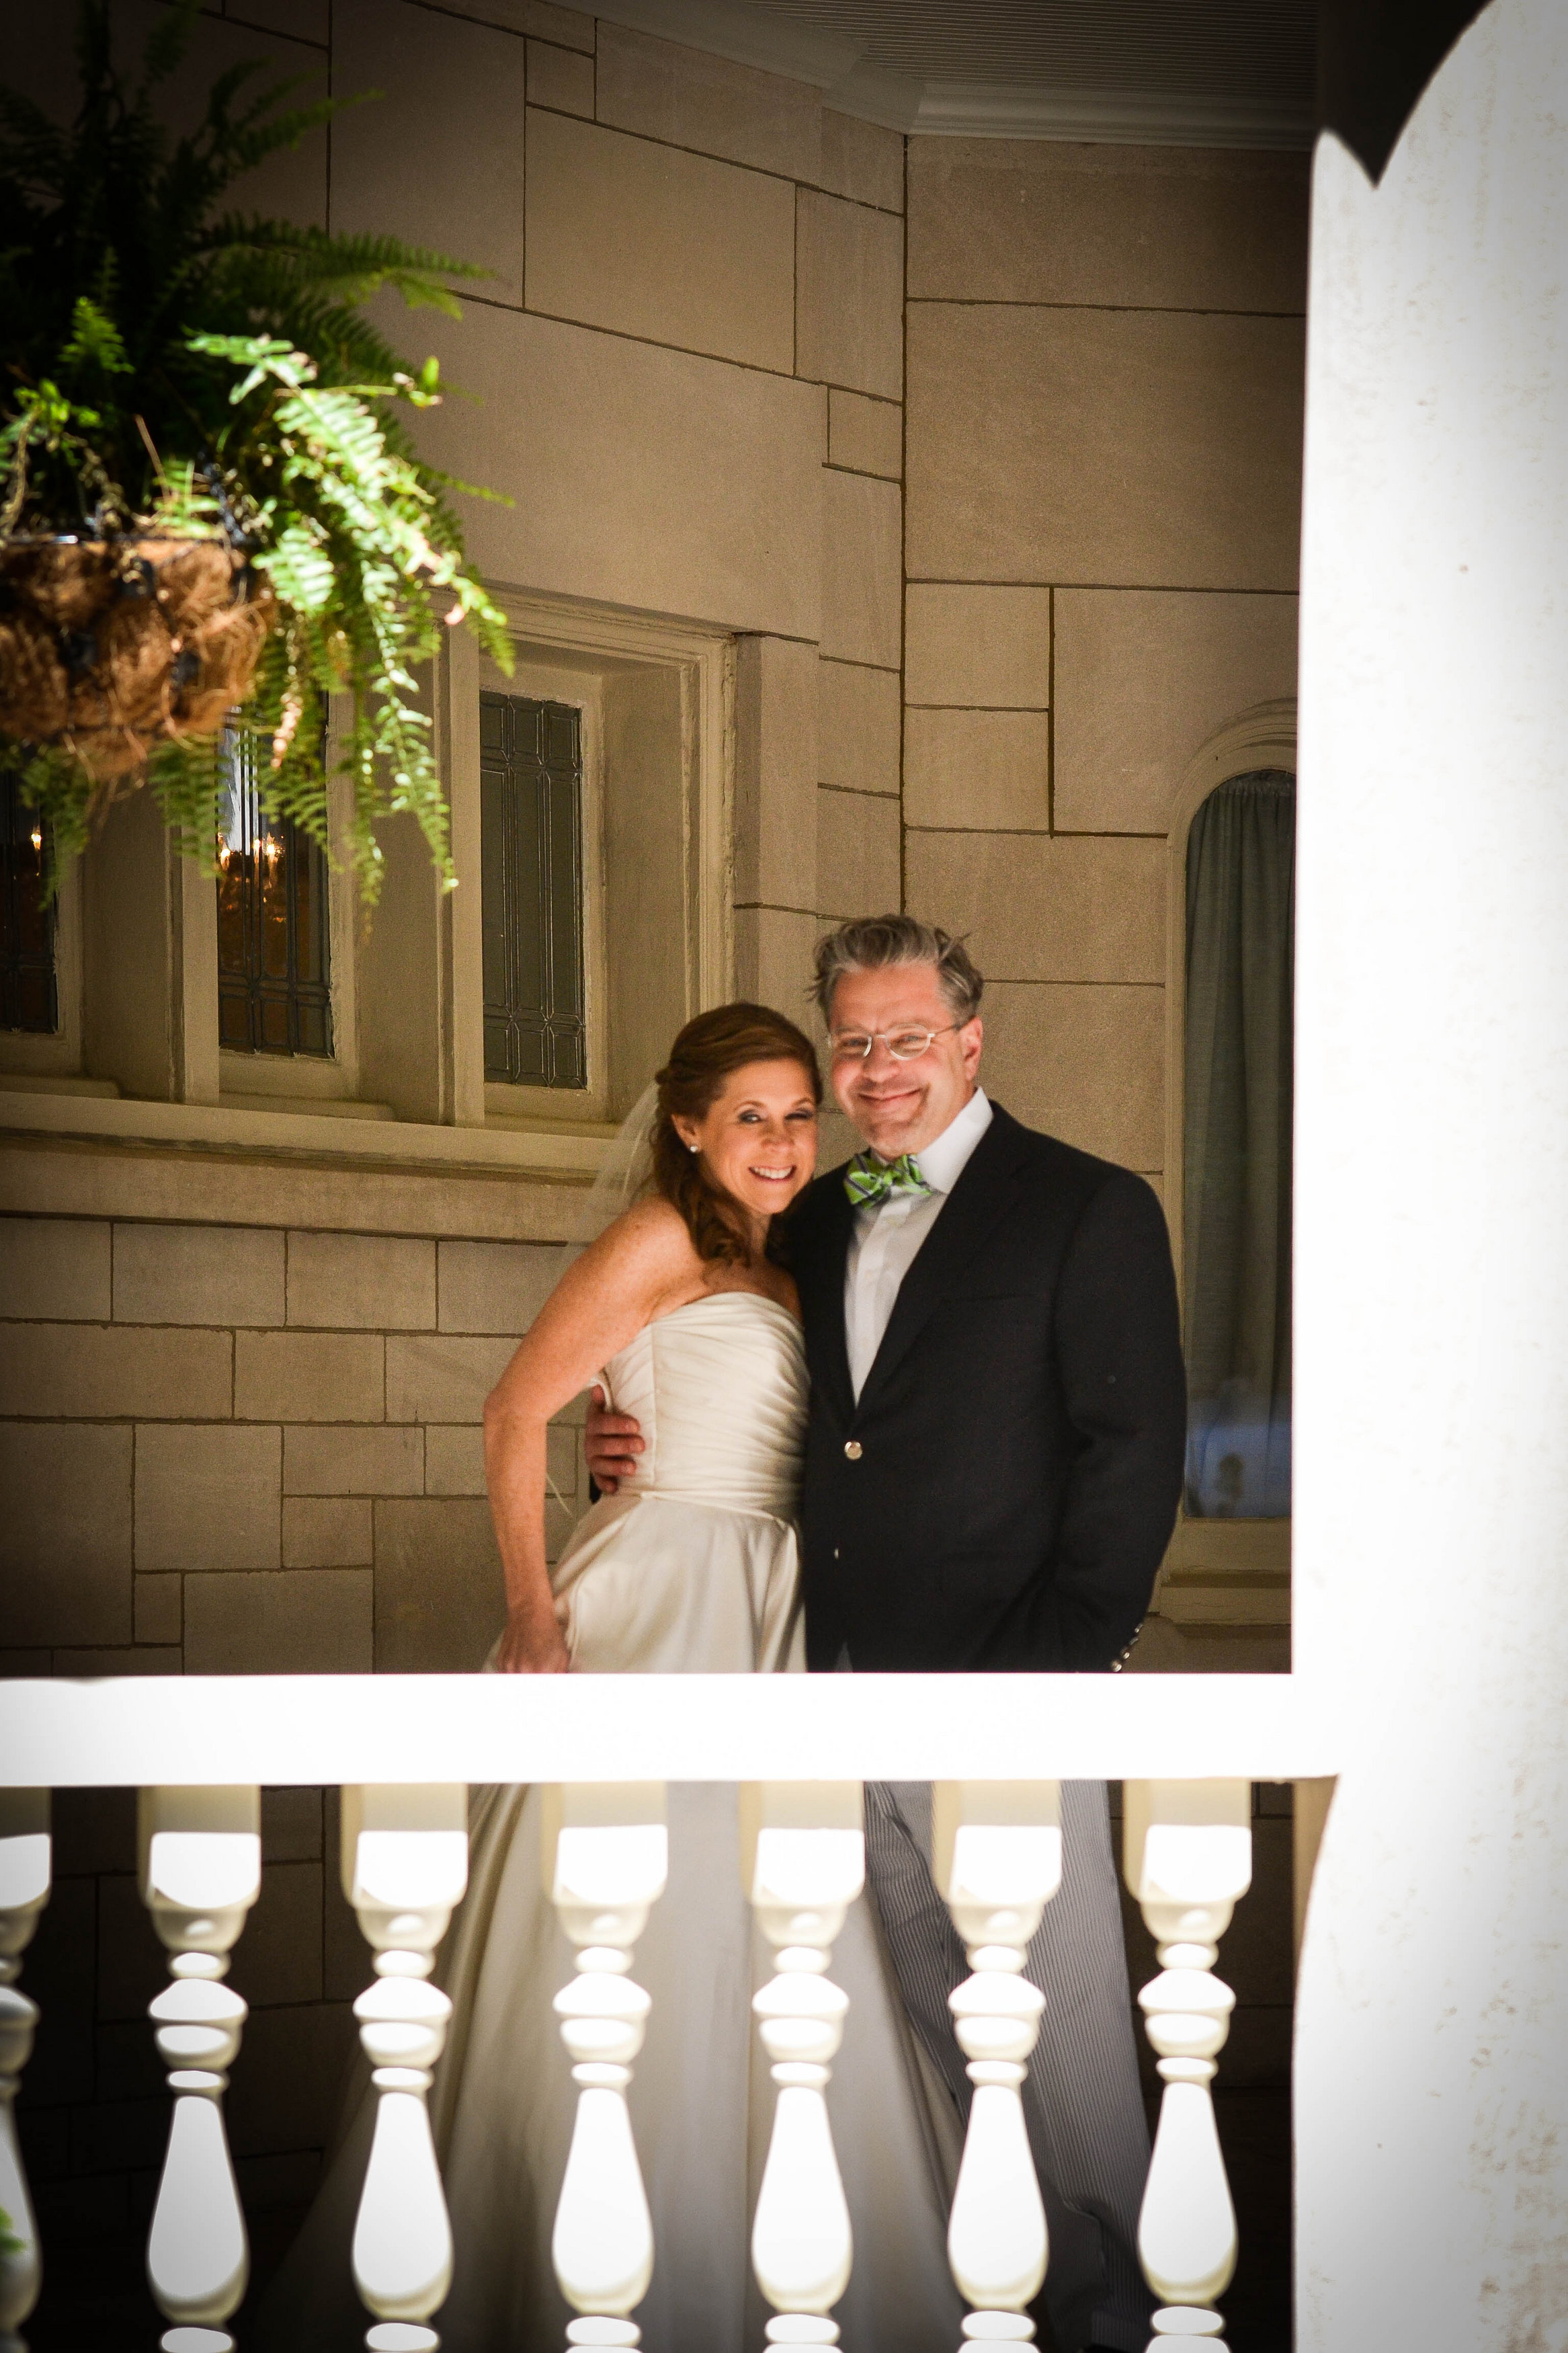 Bride and groom standing on outdoor balcony at Wimbish House on Peachtree Street